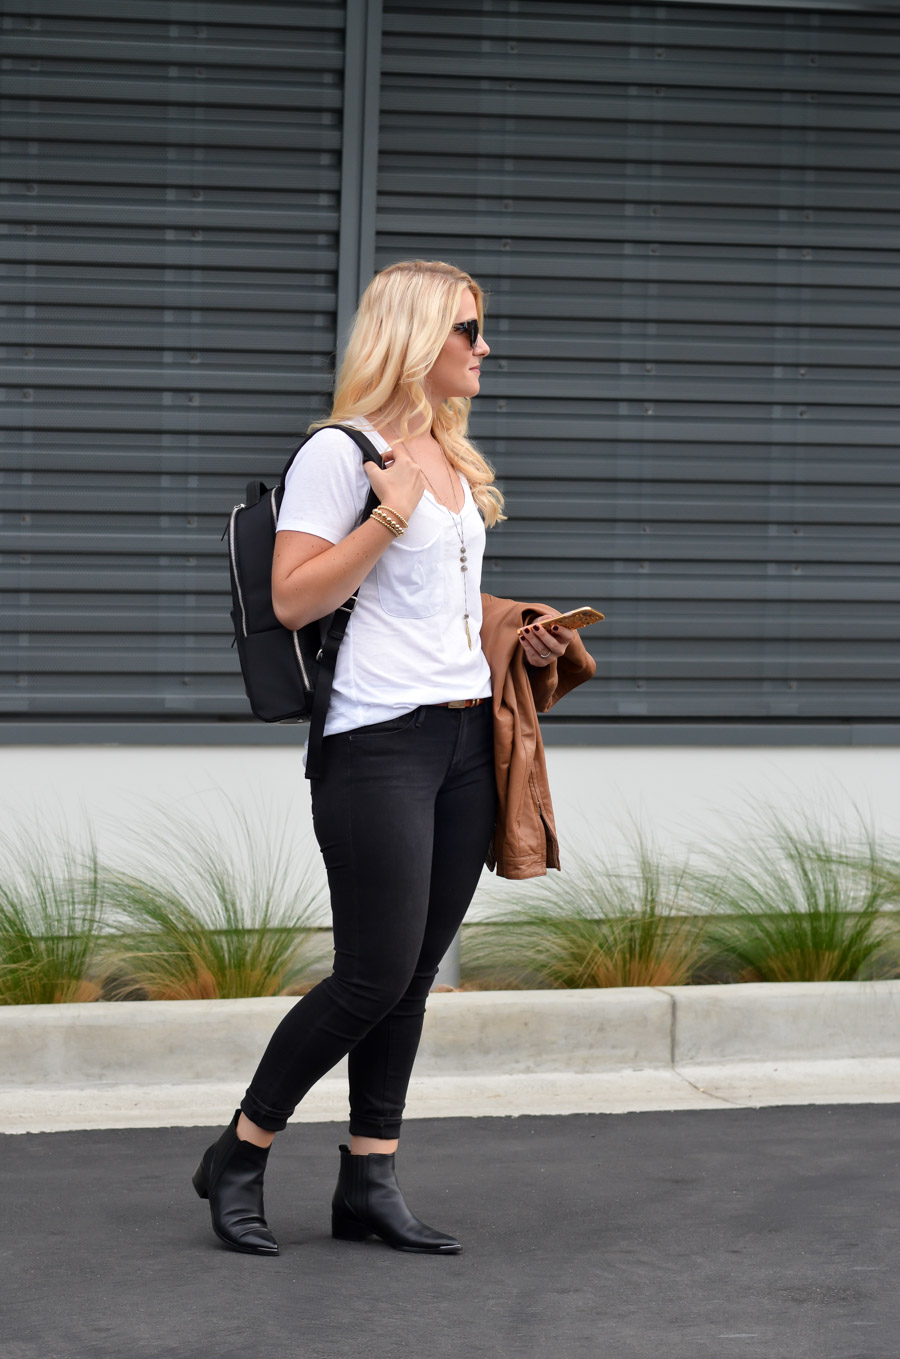 Backpack Outfits for Stylish Women - White T shirt + Black Jeans